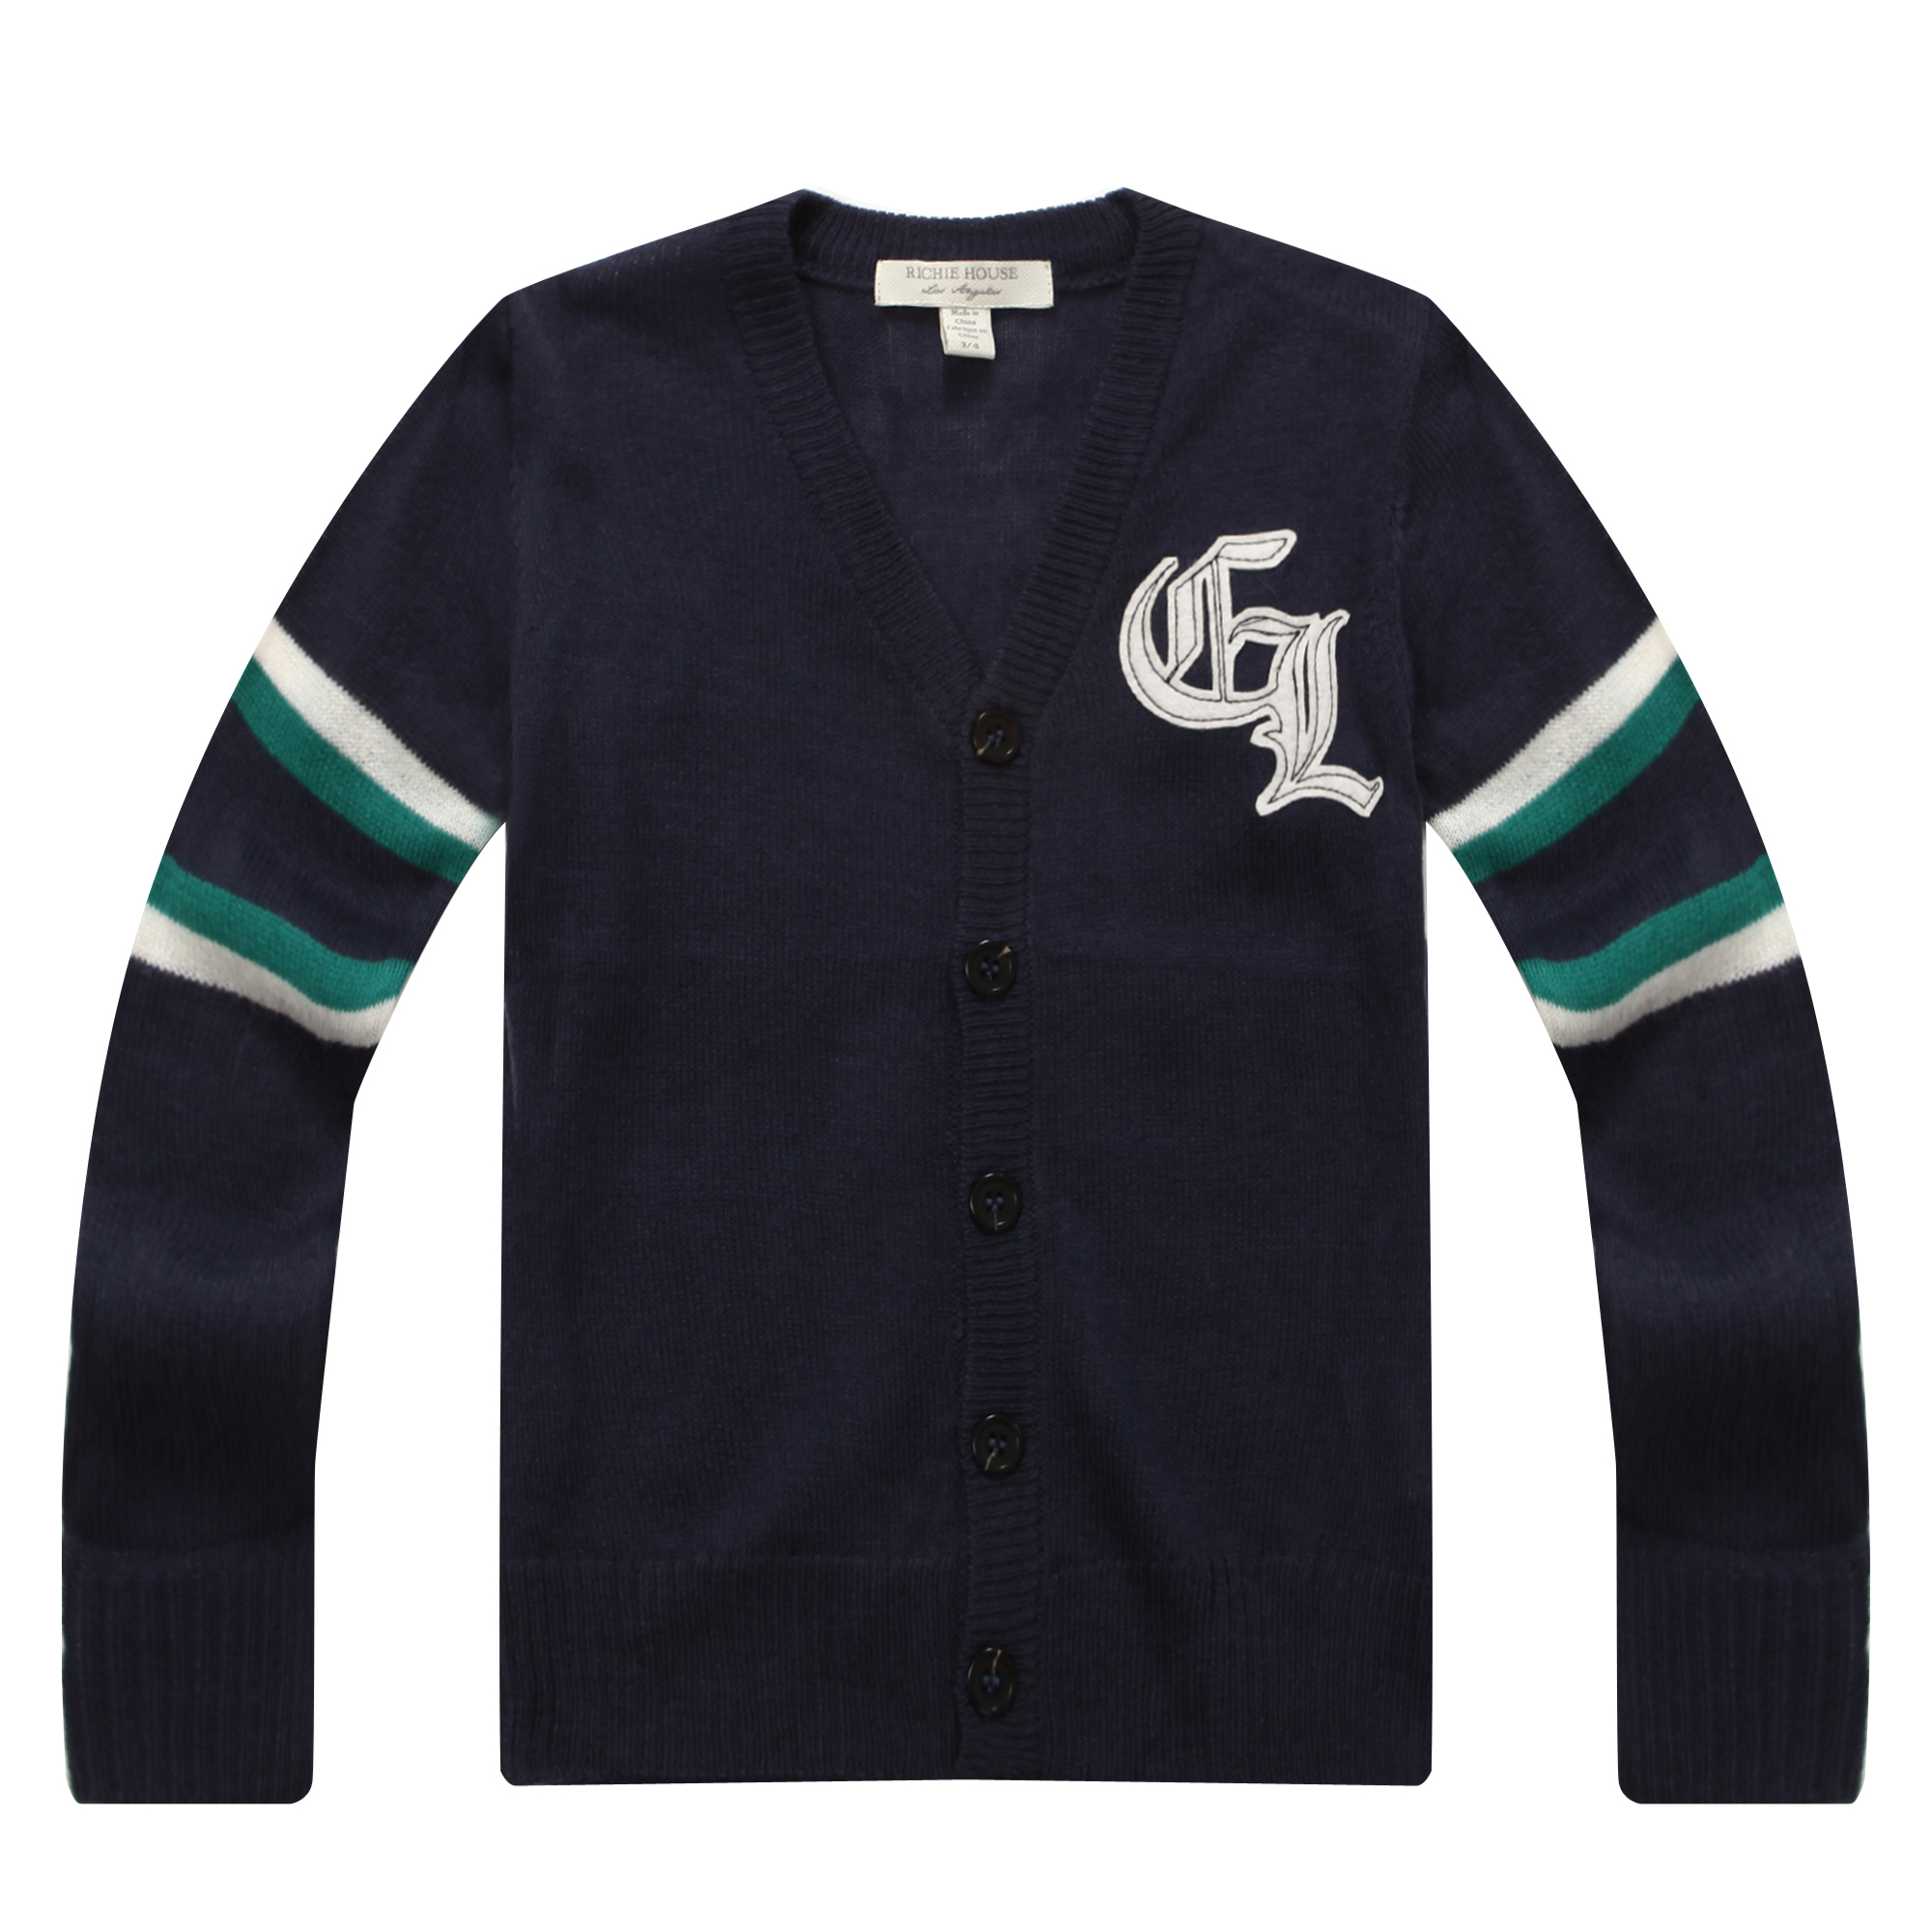 Richie House Boys' Handsome Cardigan Sweater with Embroidery RH0700